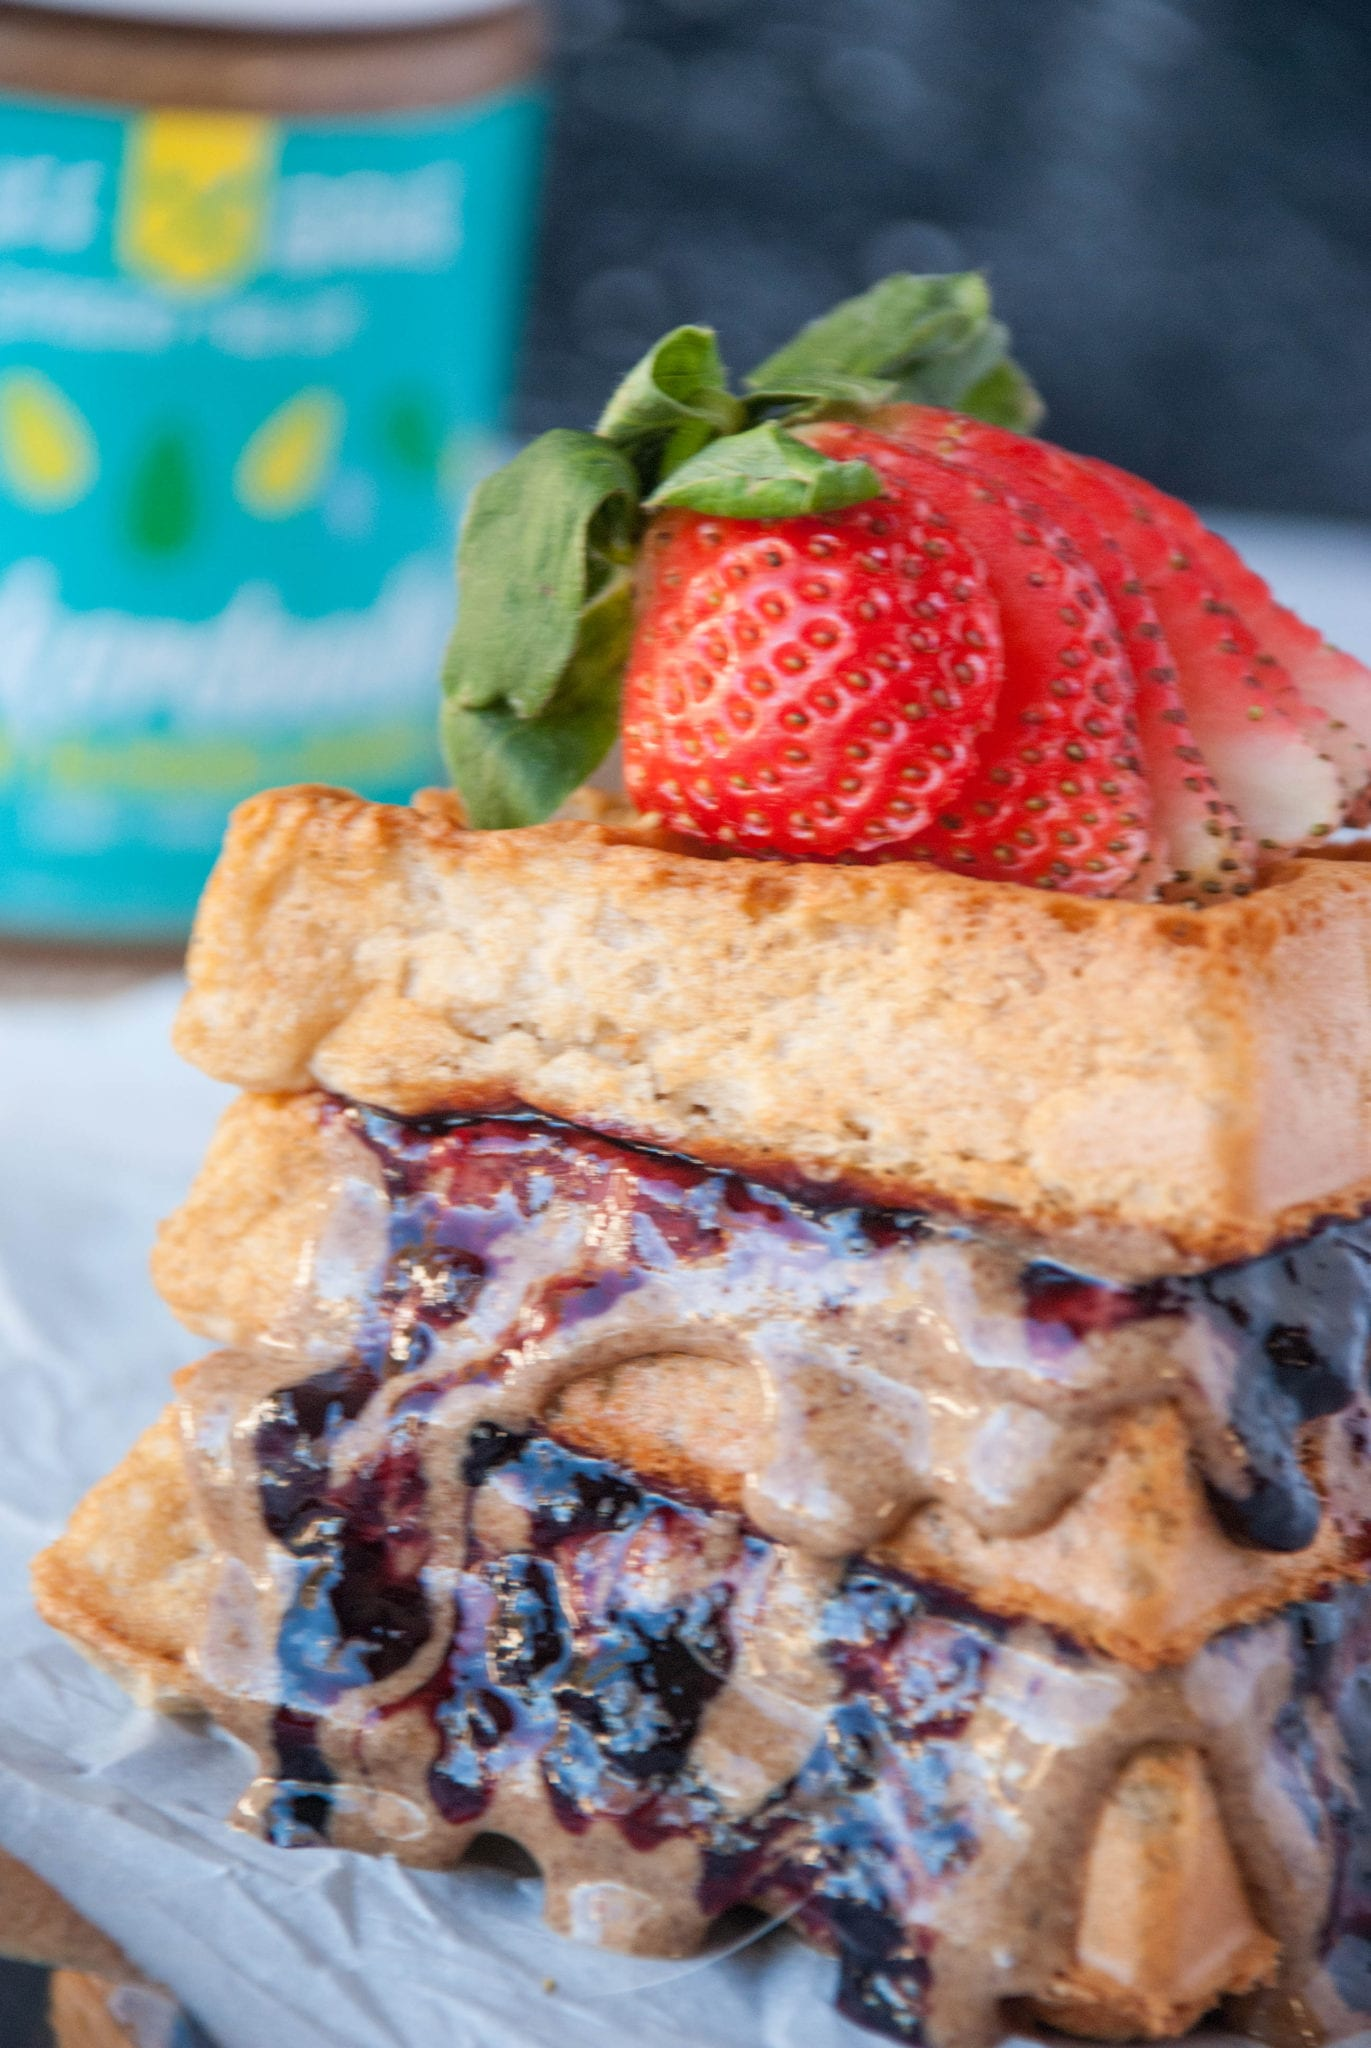 Kodiak Cake's Nut Butter & Jelly Waffles